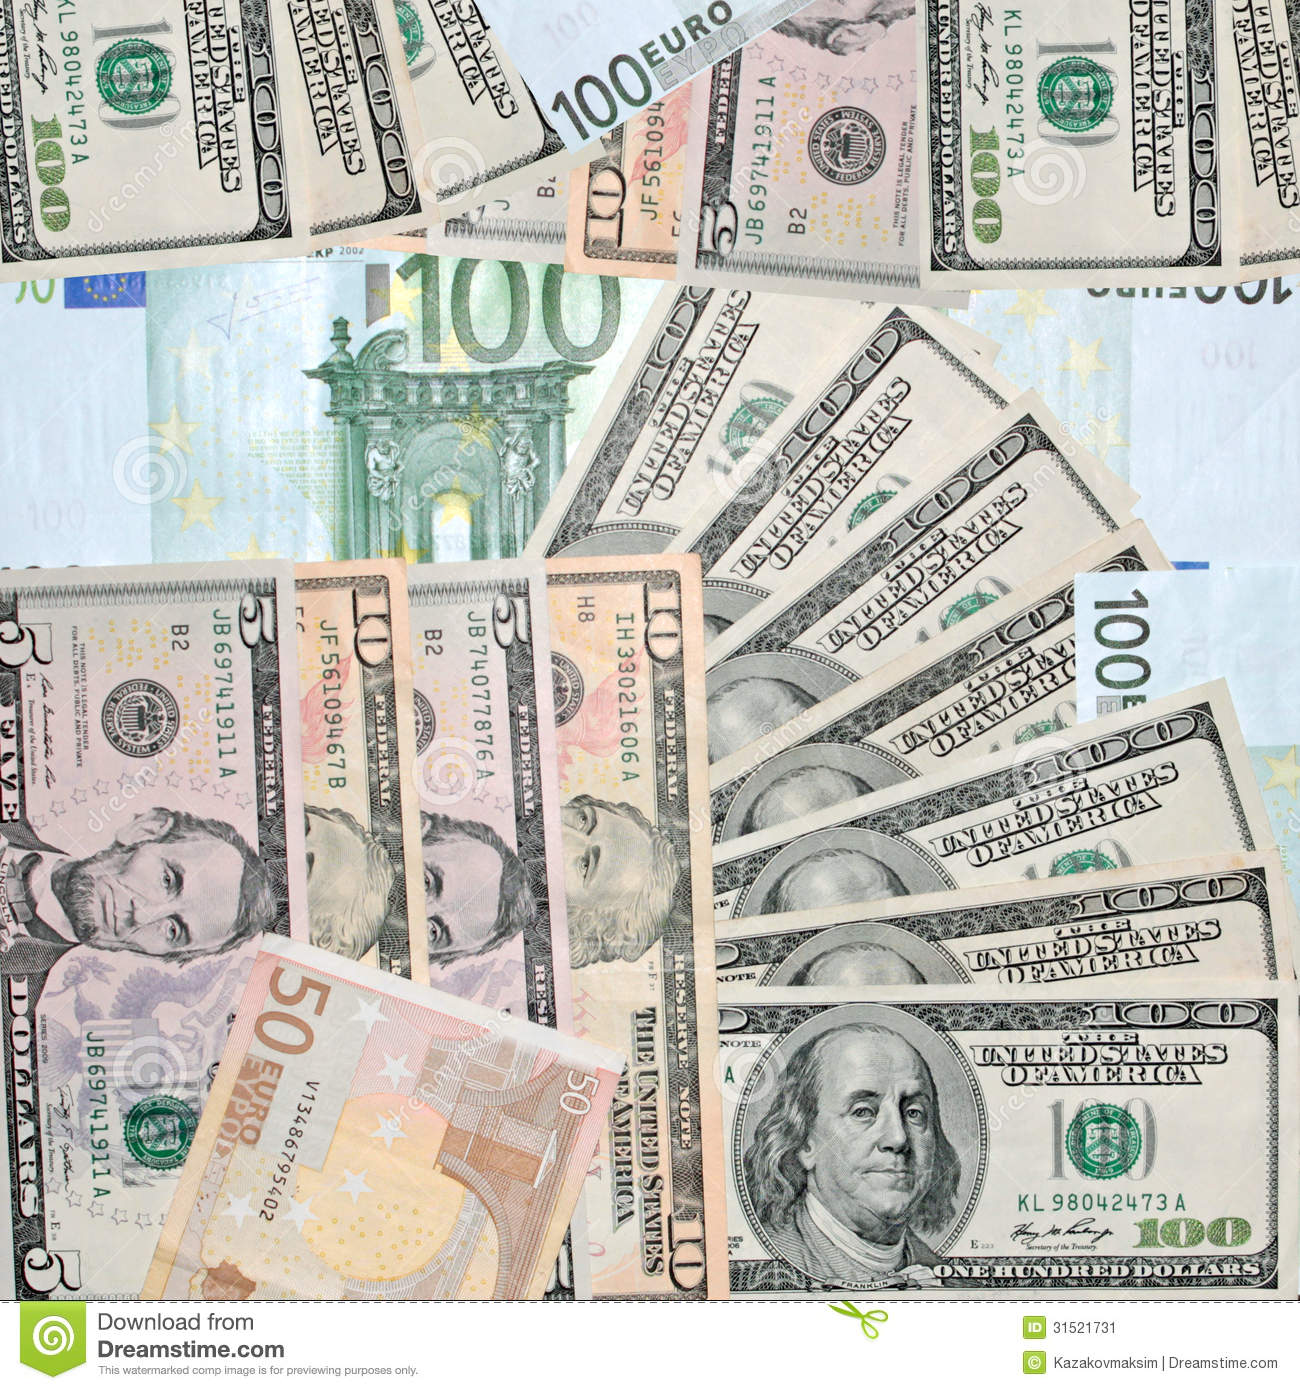 100(USD) US Dollar(USD) To Euro(EUR) Currency Exchange Today